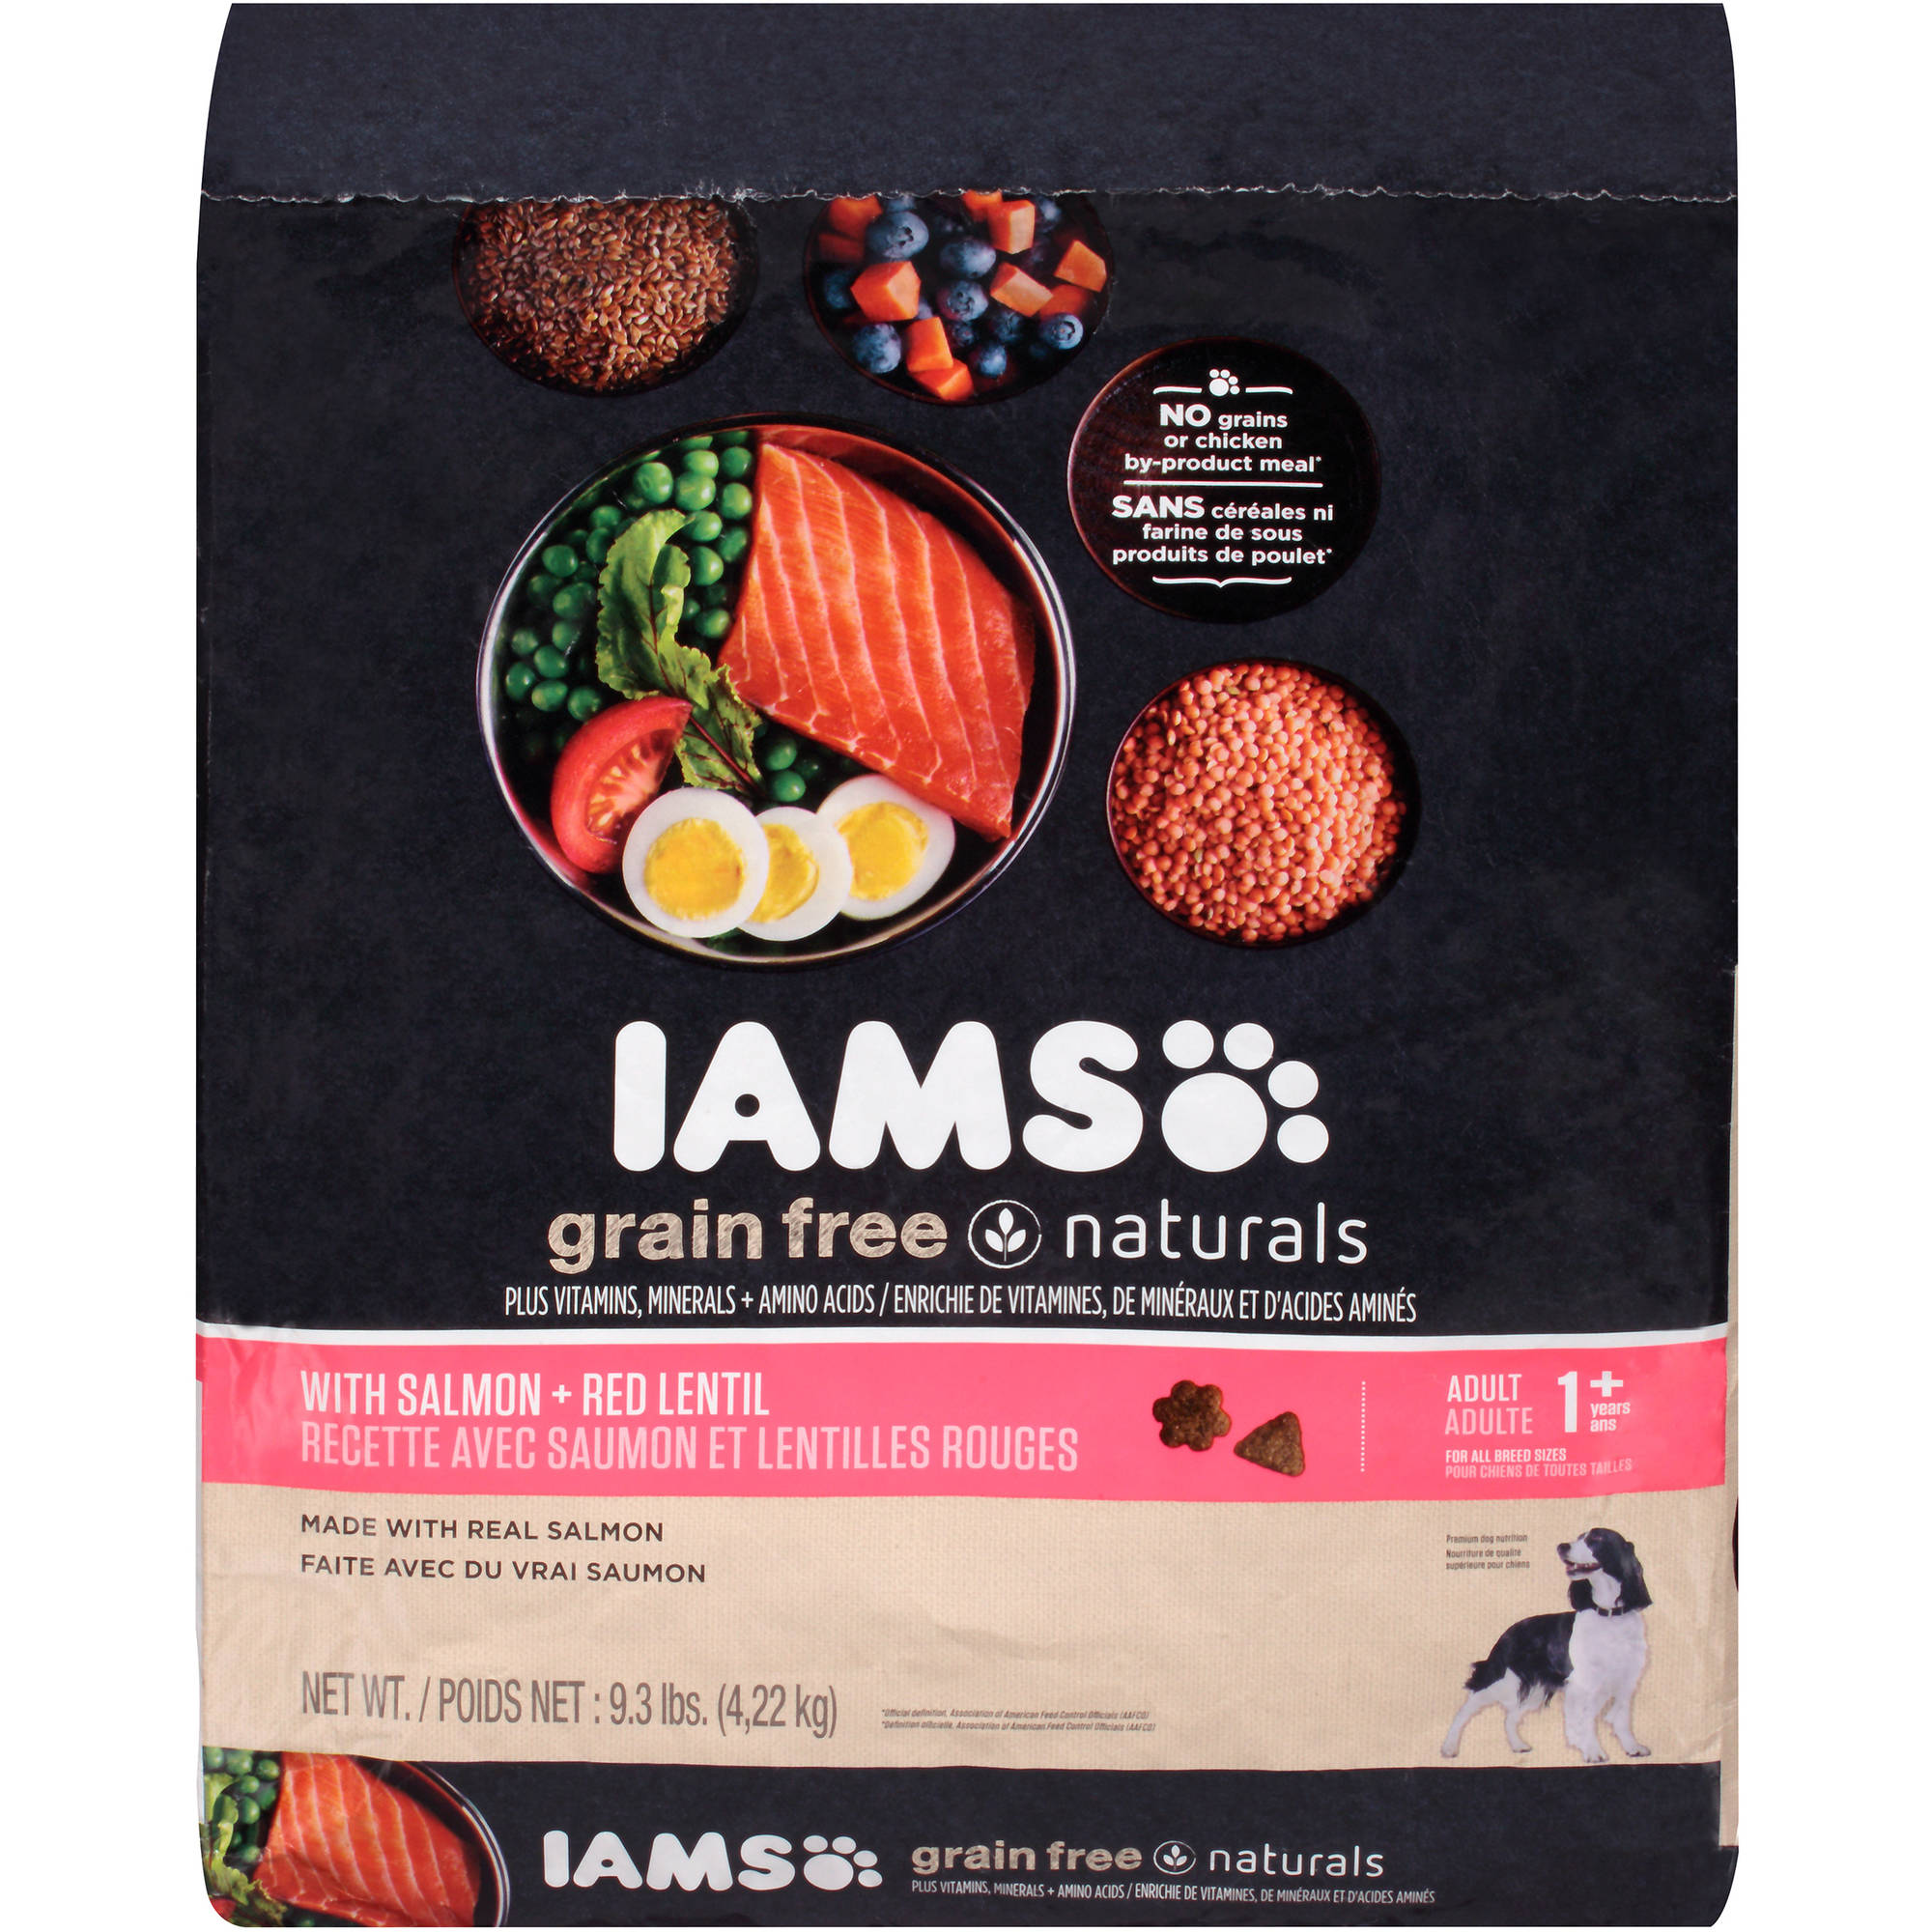 Iams Grain Free Naturals with Salmon + Red Lentil Adult 1+ Years Dog Food 9.3  lb. Bag